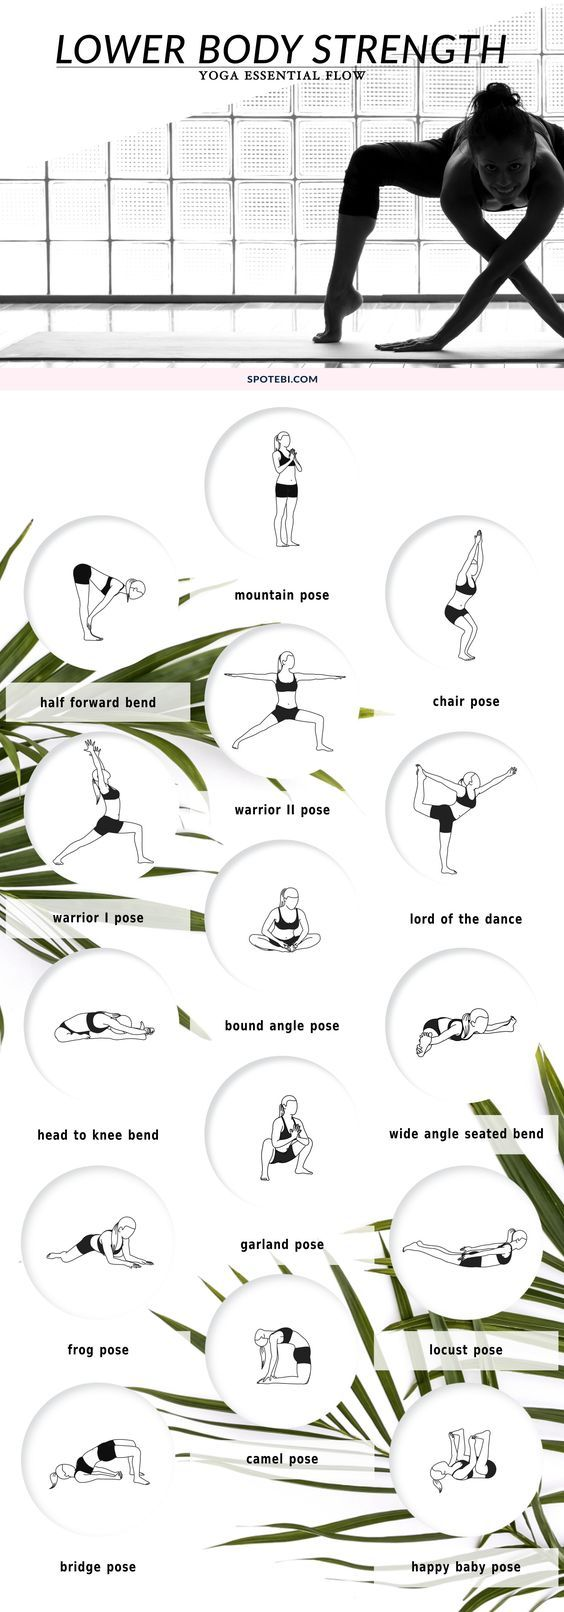 Work your legs, hips, thighs and glutes and improve lower body strength with this yoga essential flow. Activate the muscles, build flexibility and keep your focus on your breath as you gently move through these 15 grounding poses. https://www.spotebi.com/yoga-sequences/lower-body-strength-flow/